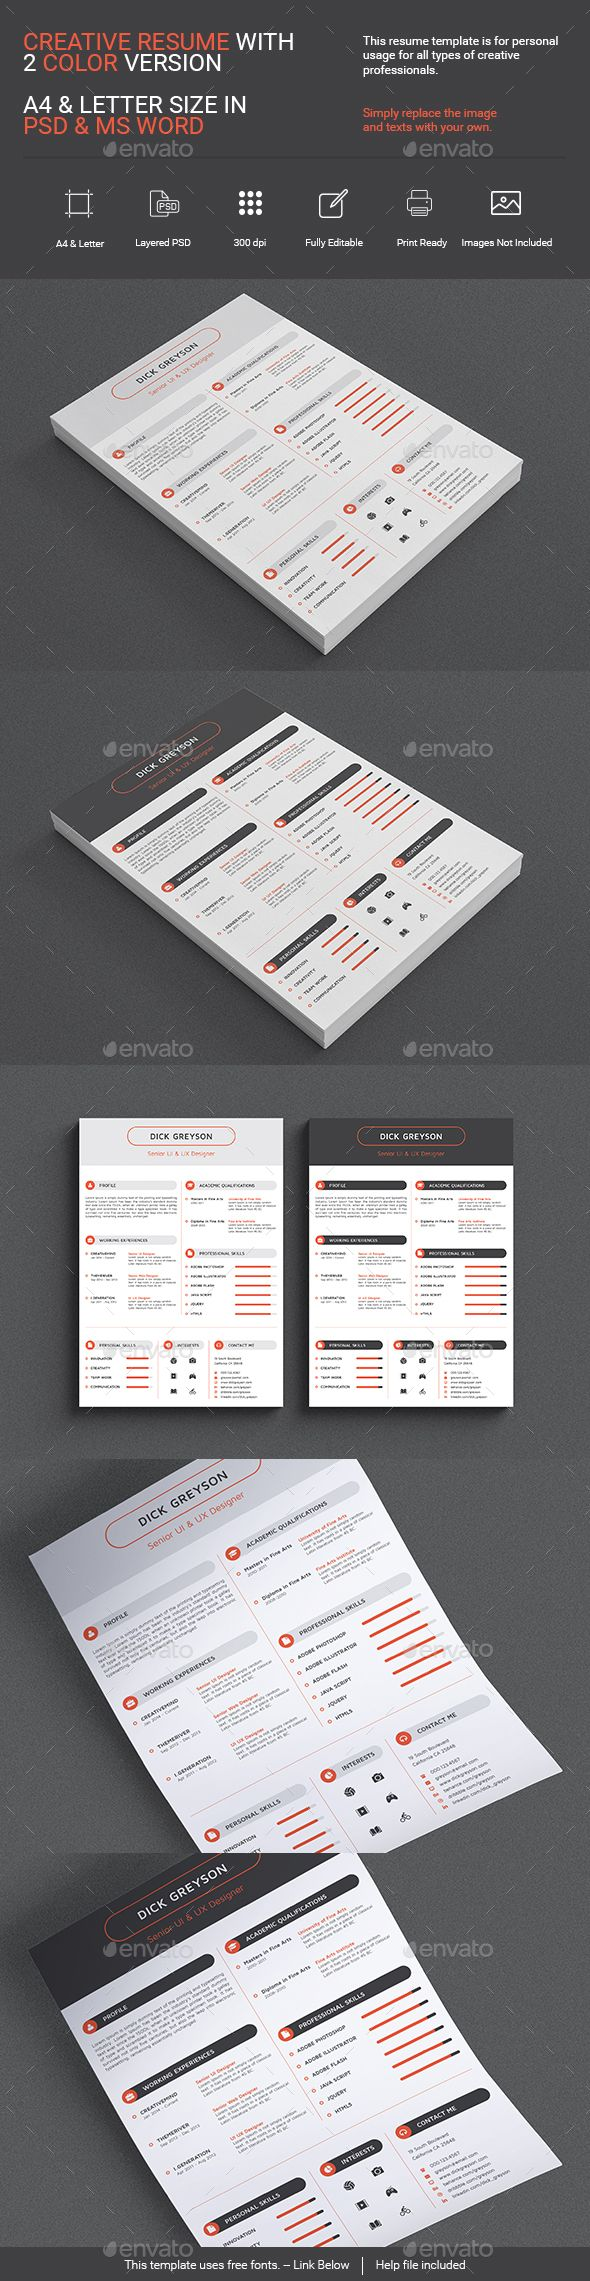 Creative Resume PSD MS Word by VERTEXART This is a Creative